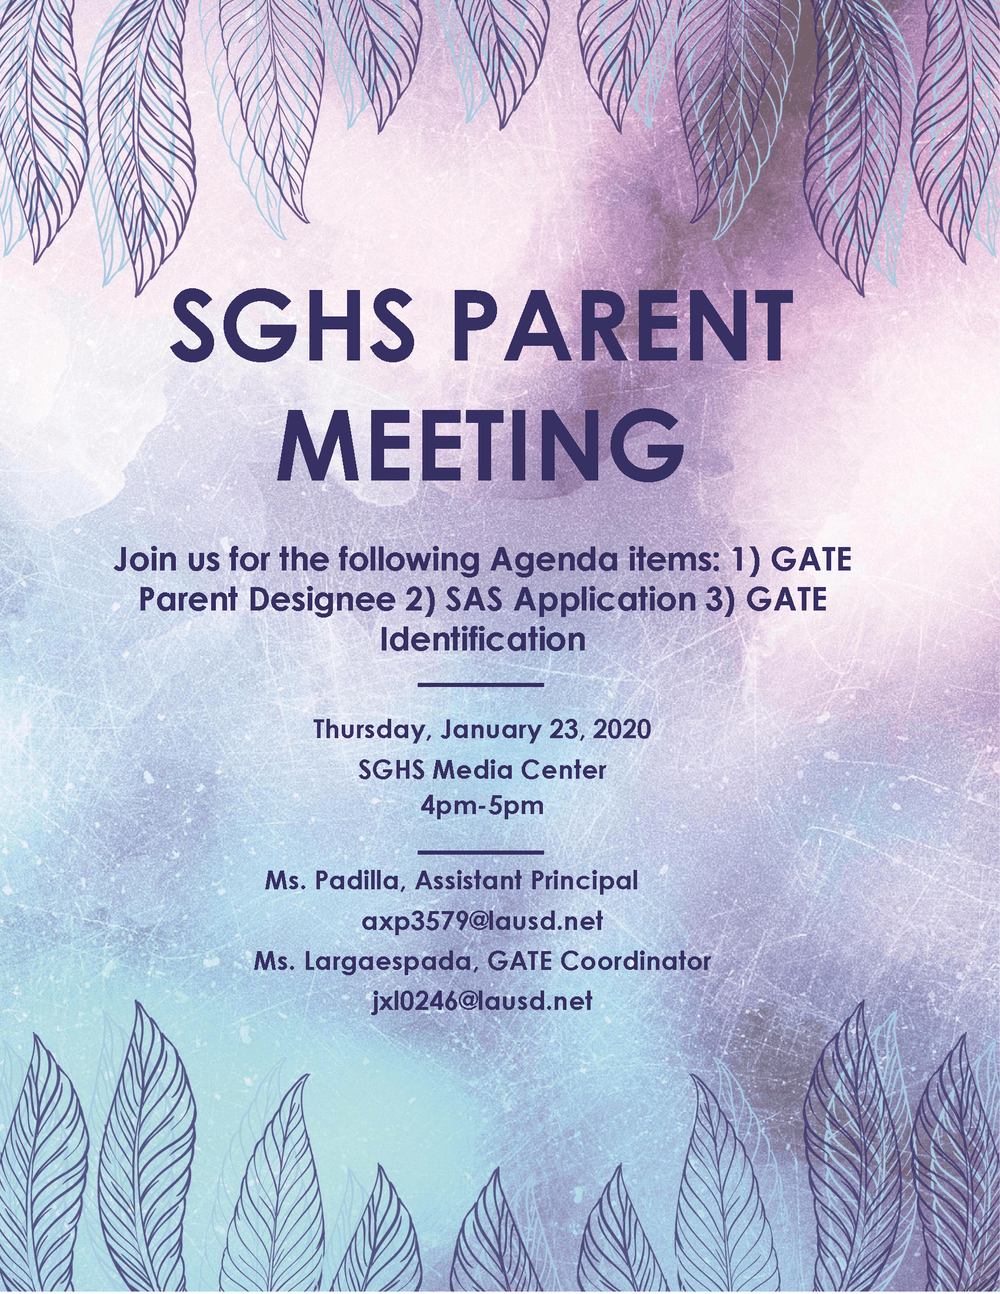 SGHS PARENT MEETING Flyer